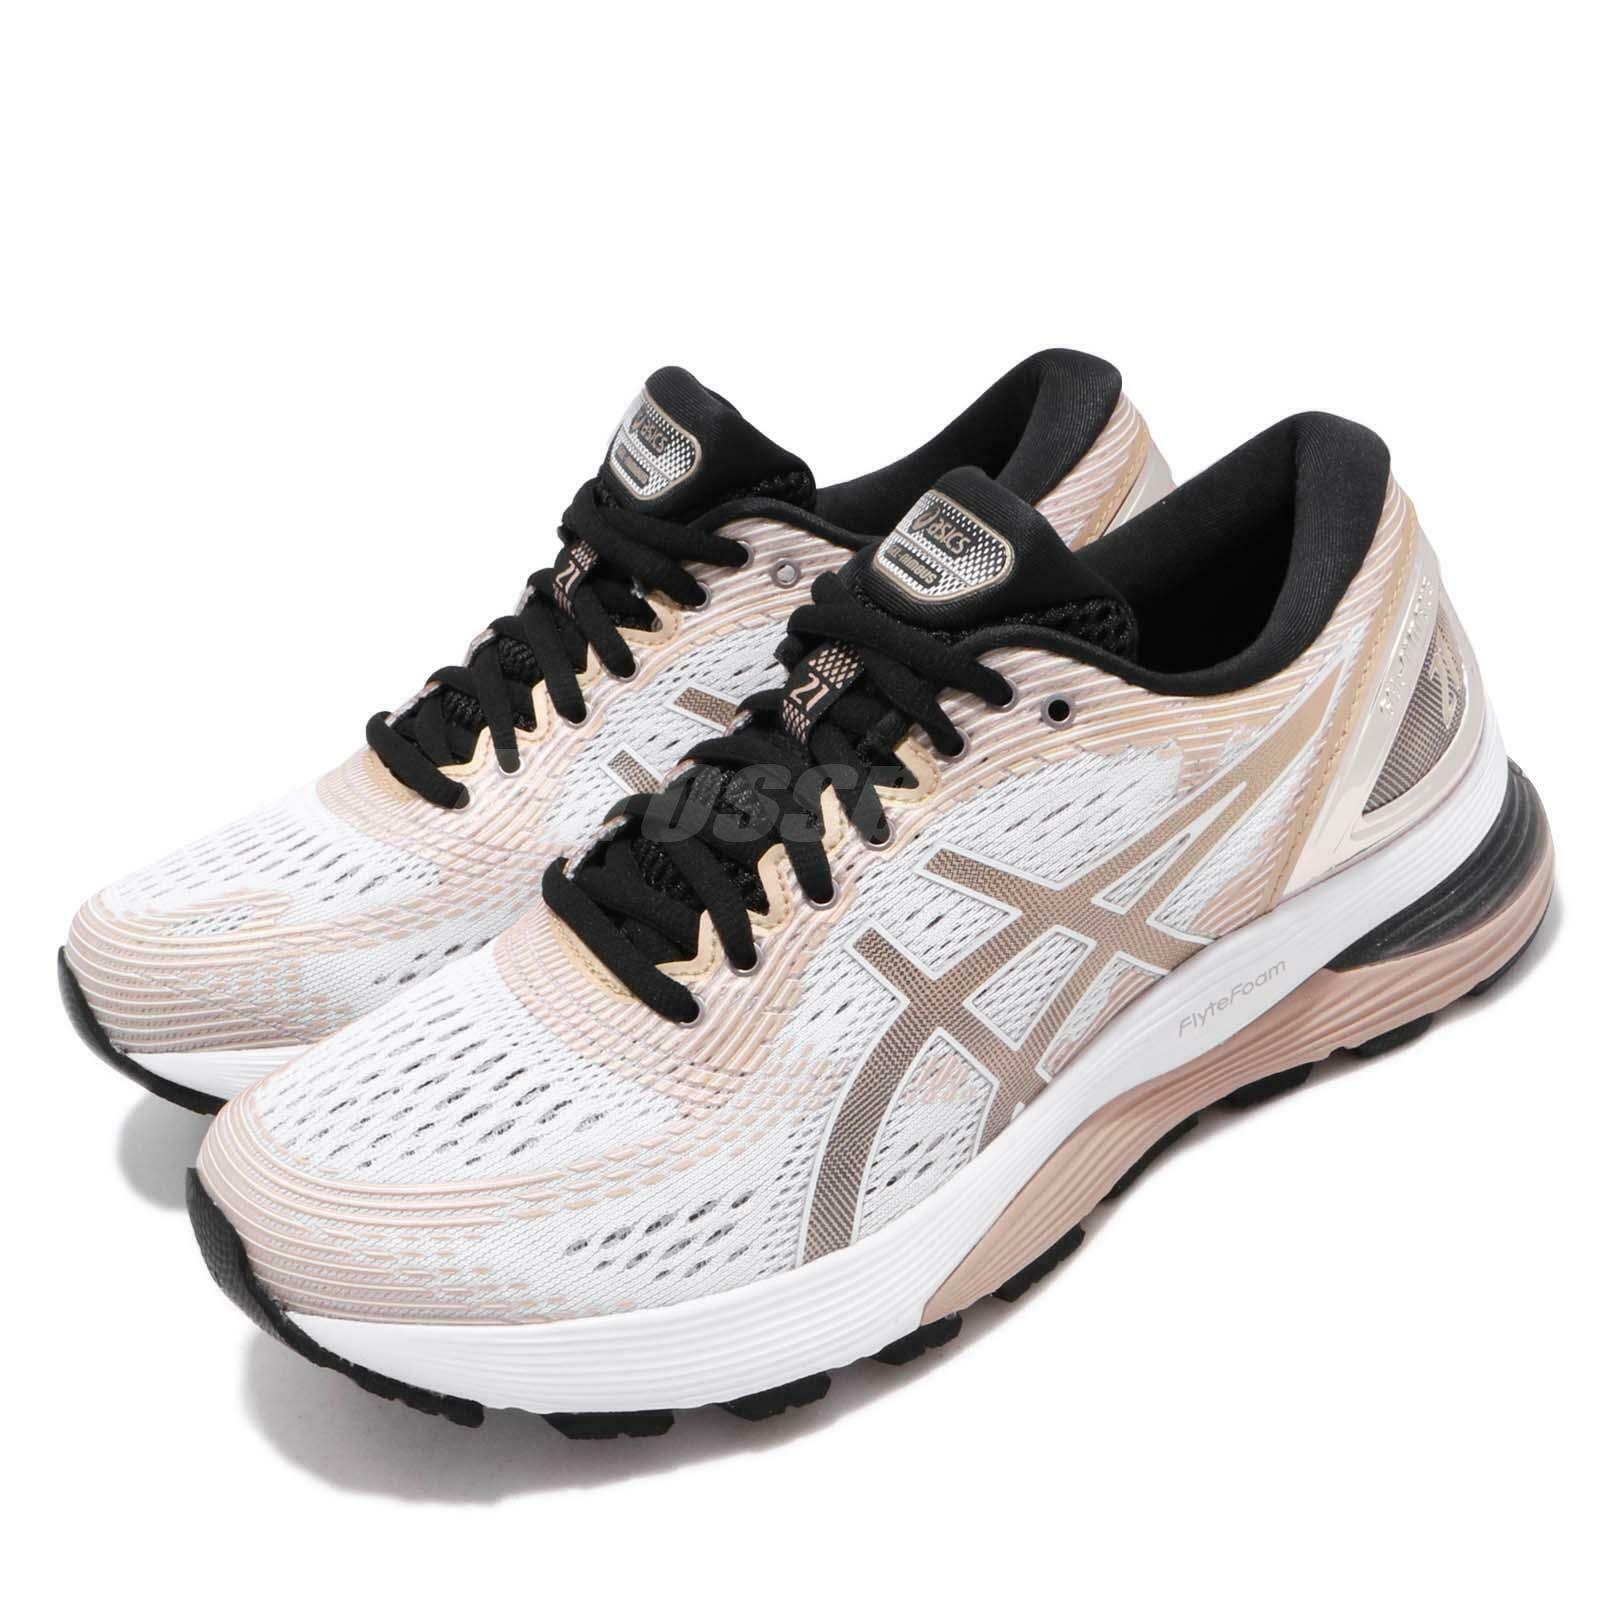 Asics Gel-Nimbus 21 Platinum  White Frosted Almond Womens Run shoes 1012A608-100  cheap sale outlet online